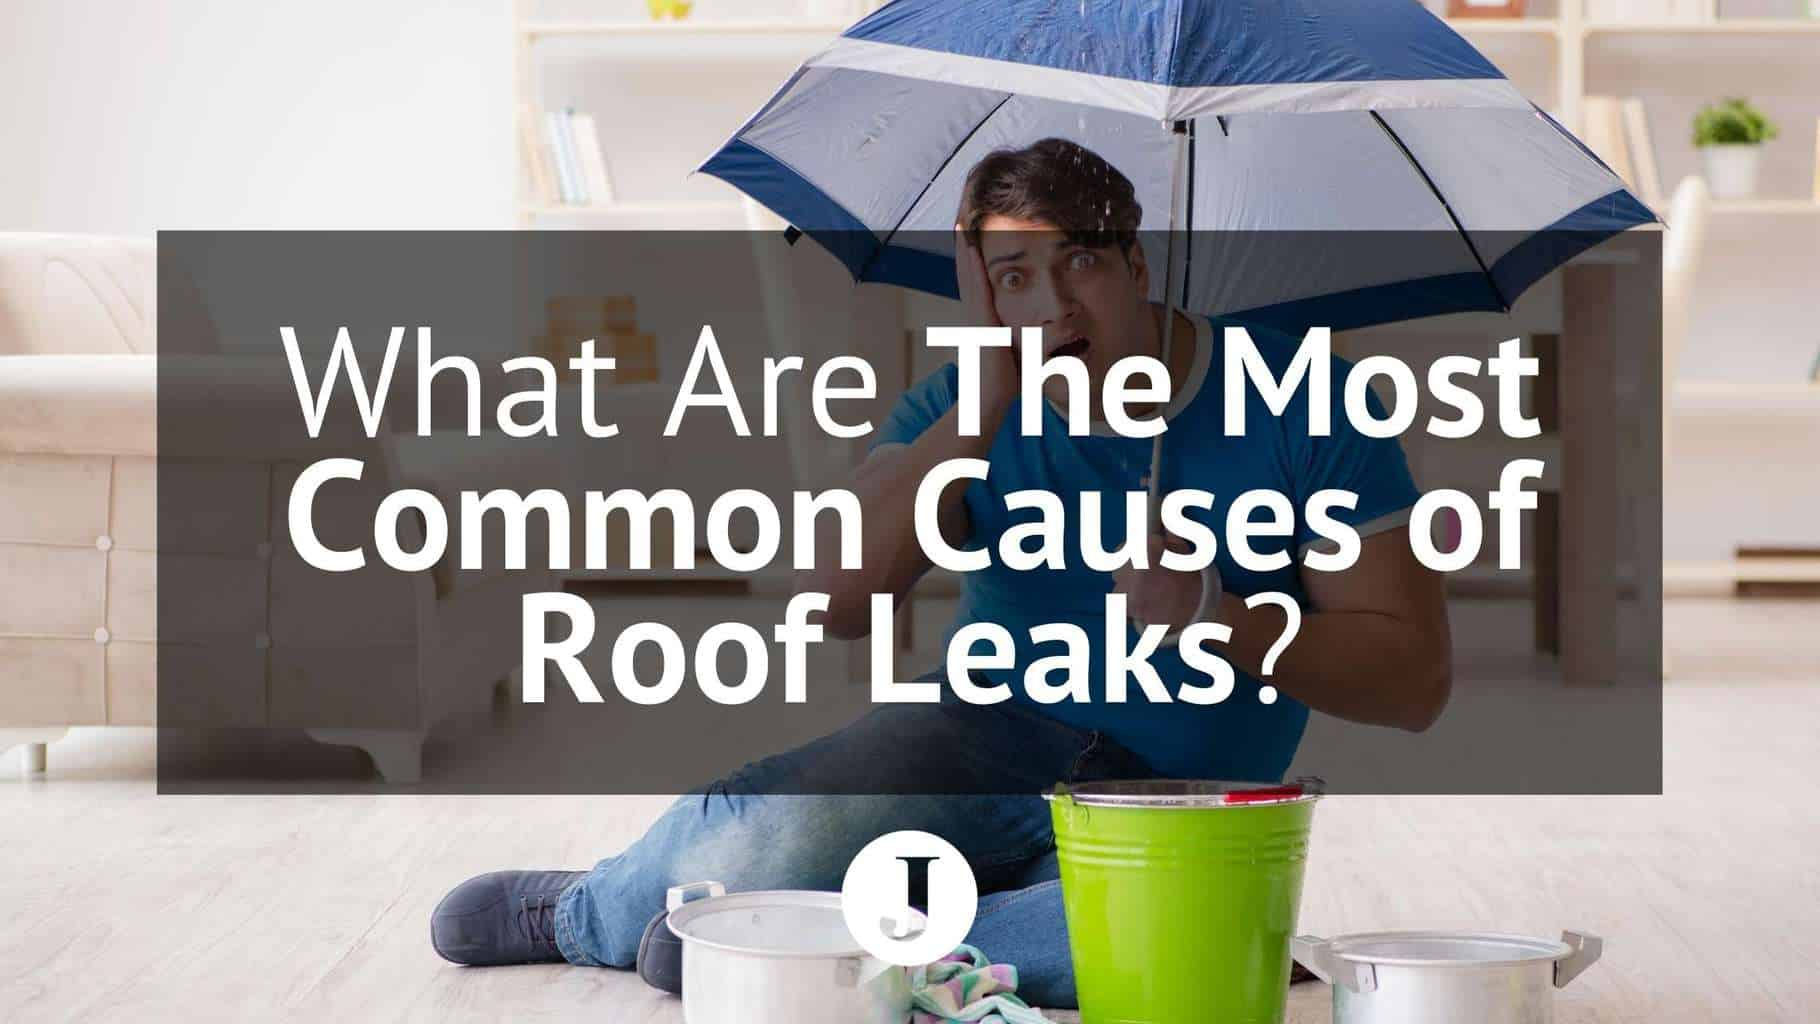 What Are The Most Common Causes Of Roof Leaks